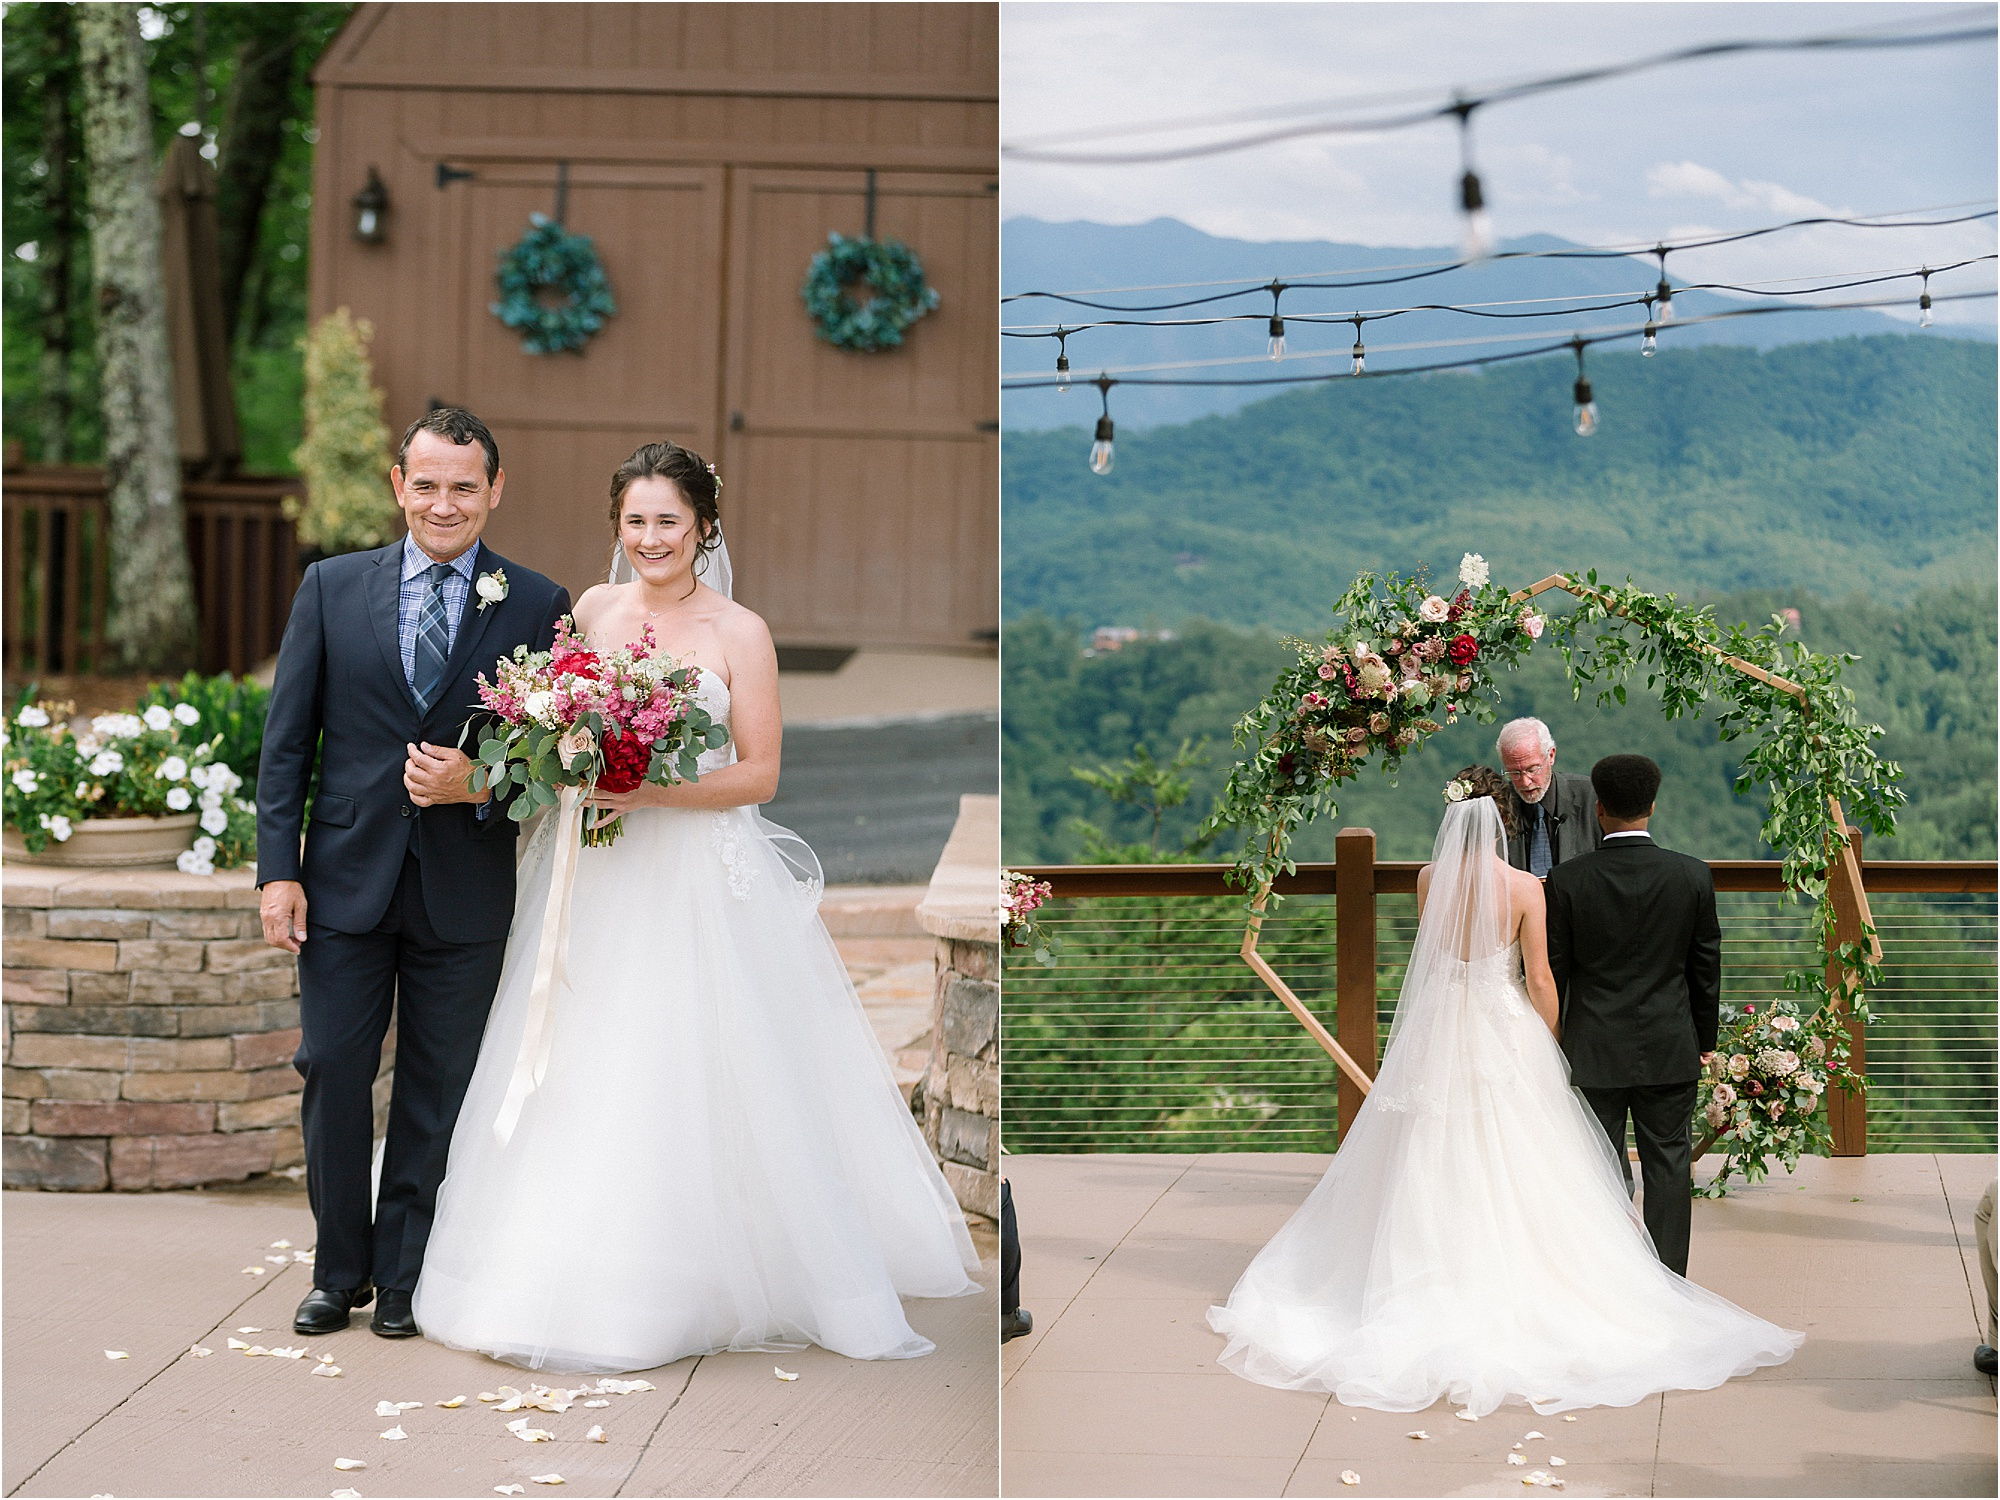 wedding ceremony at mountaintop wedding venue in Pigeon Forge, Tennessee